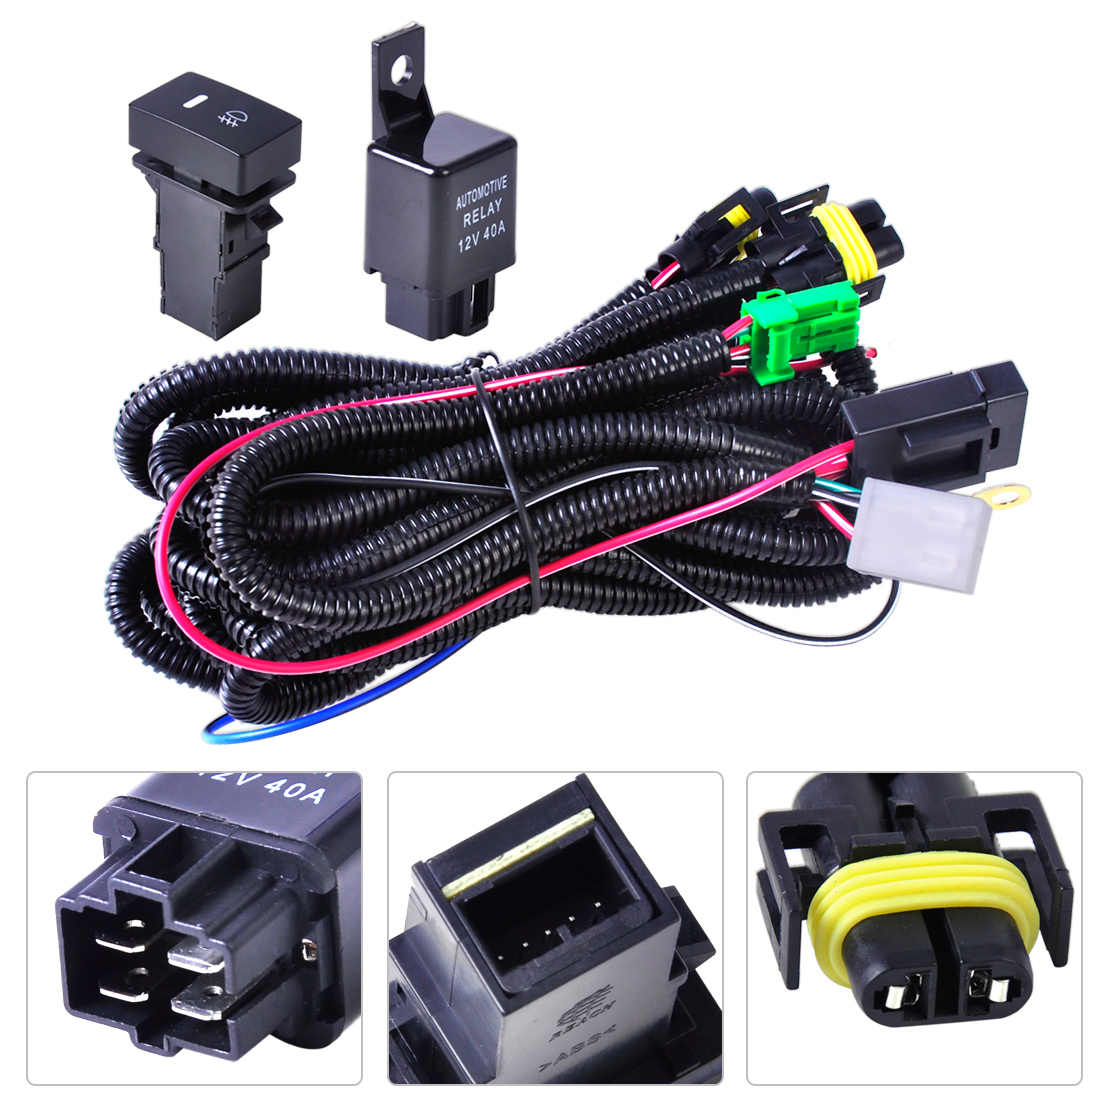 dwcx wiring harness sockets wire switch for h11 fog light lamp for ford focus 2008 [ 1110 x 1110 Pixel ]